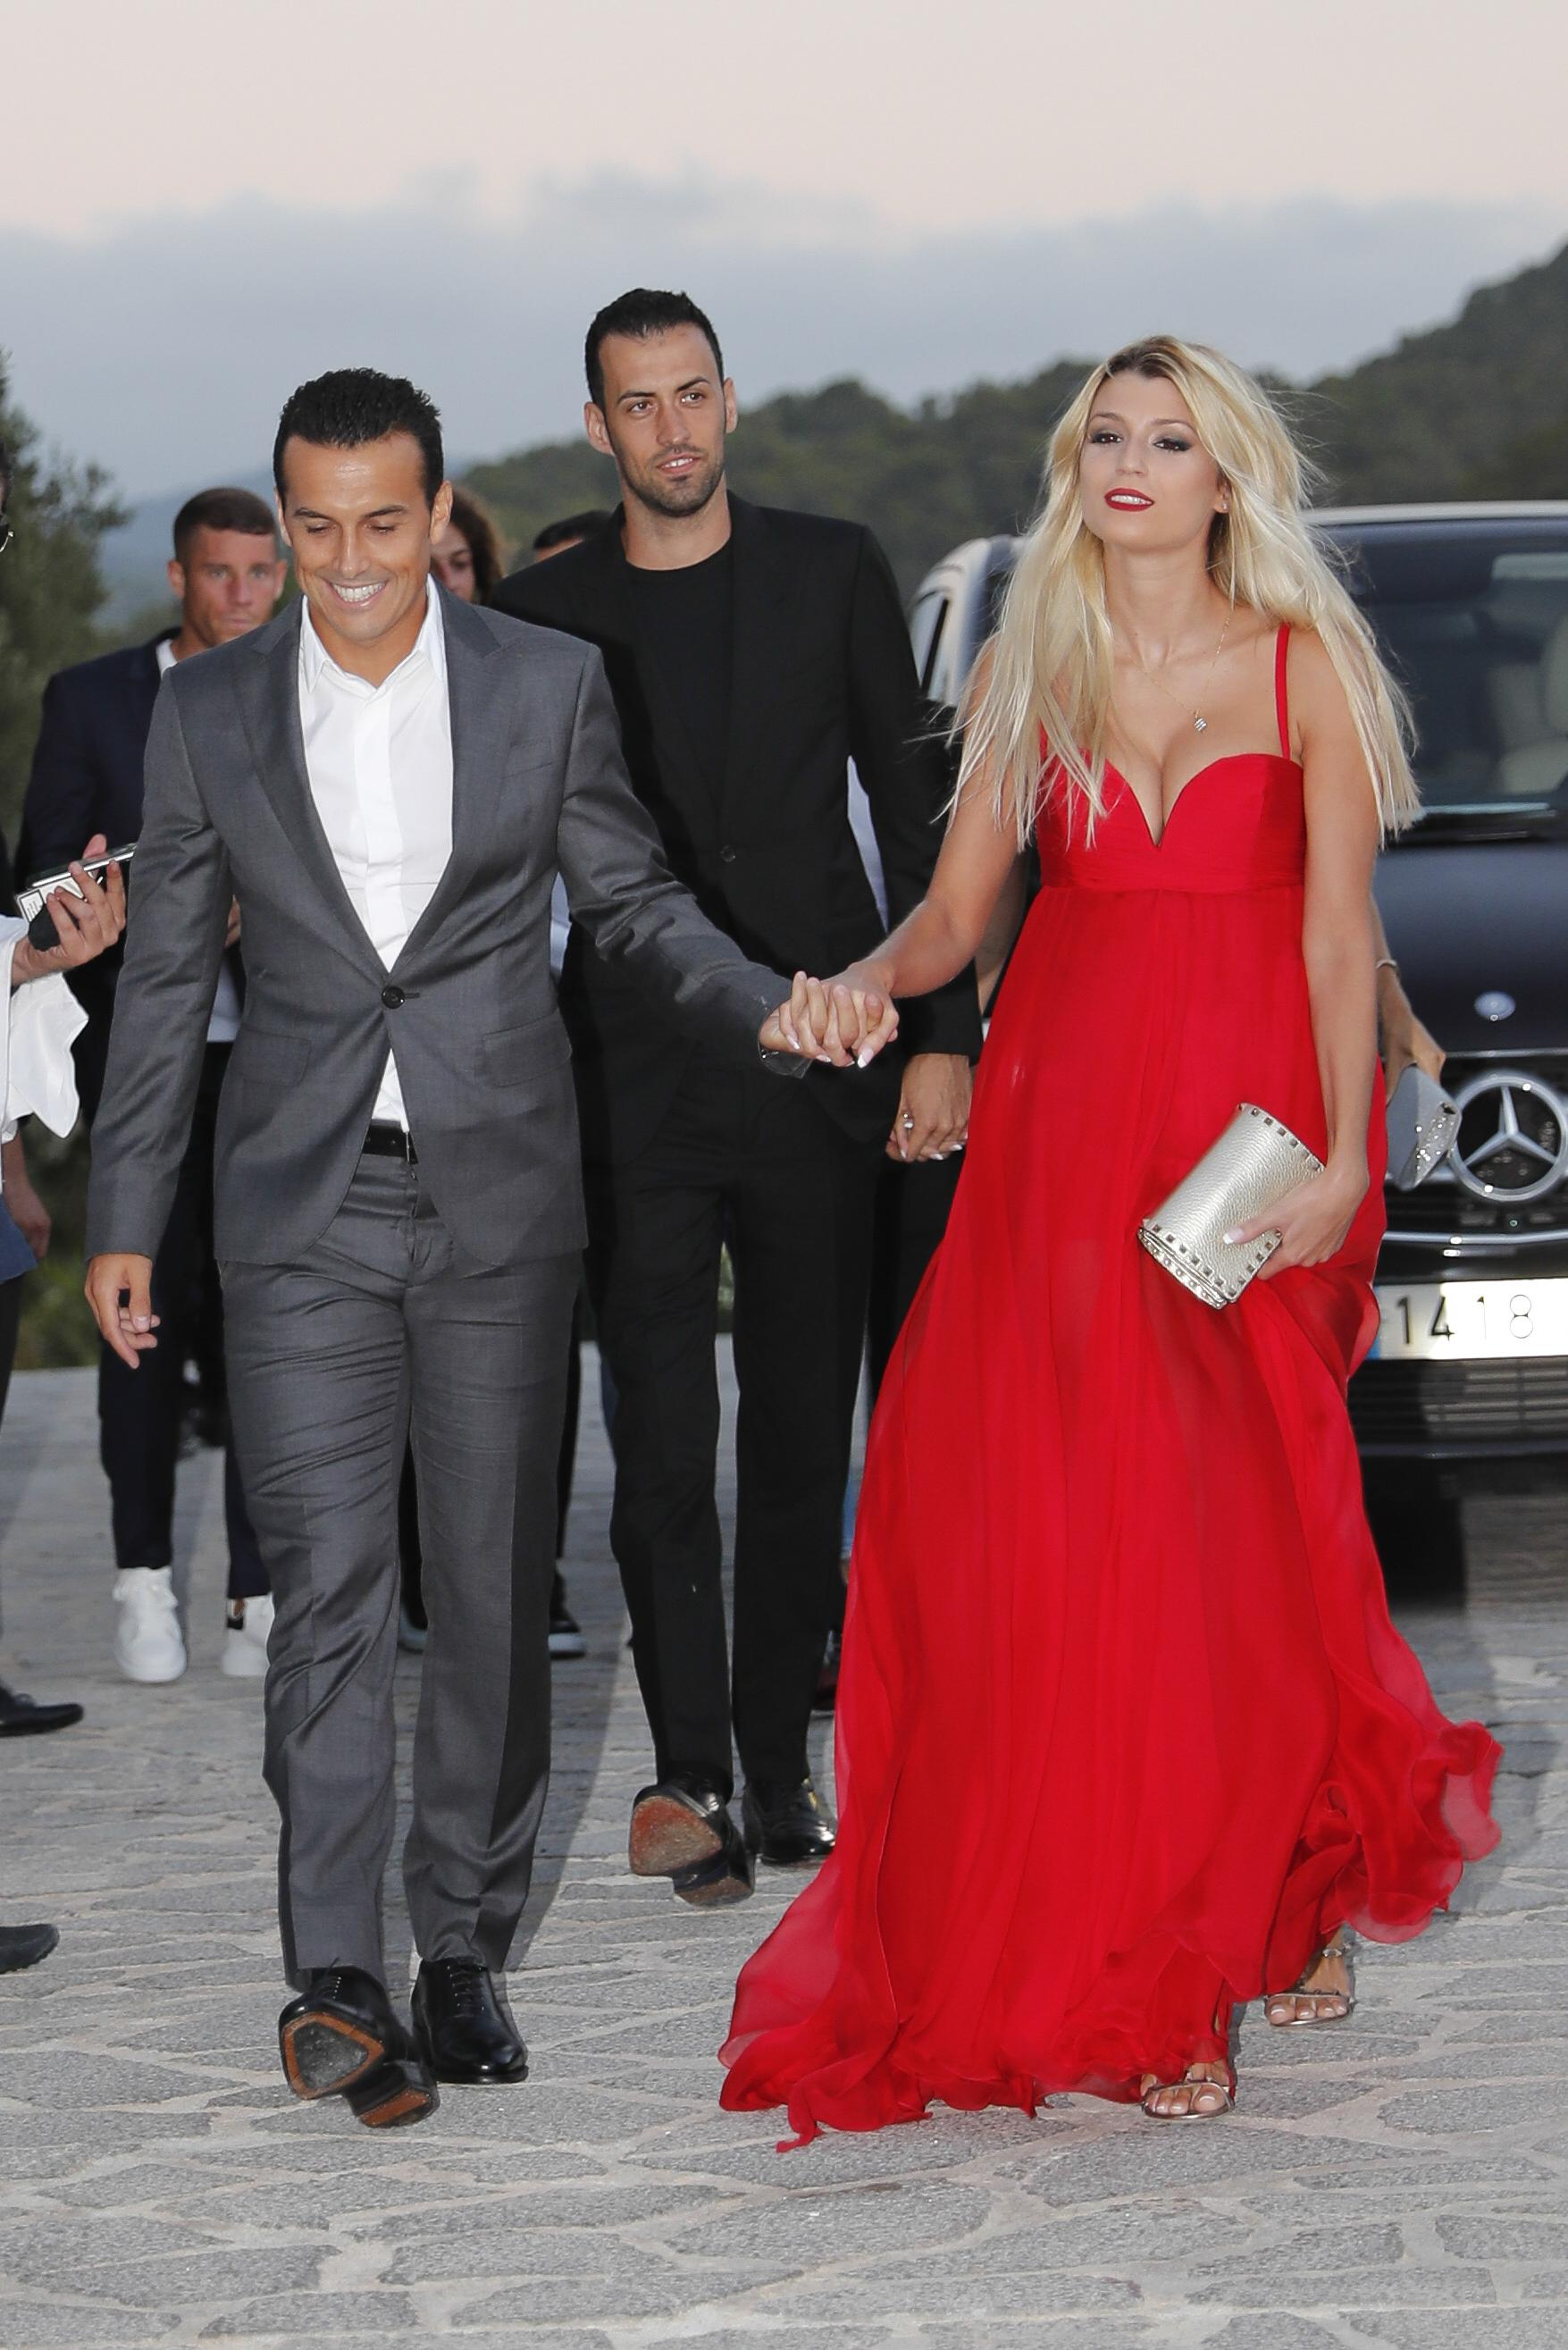 Pedro and his partner look in good spirits as they arrive at the Ibiza party